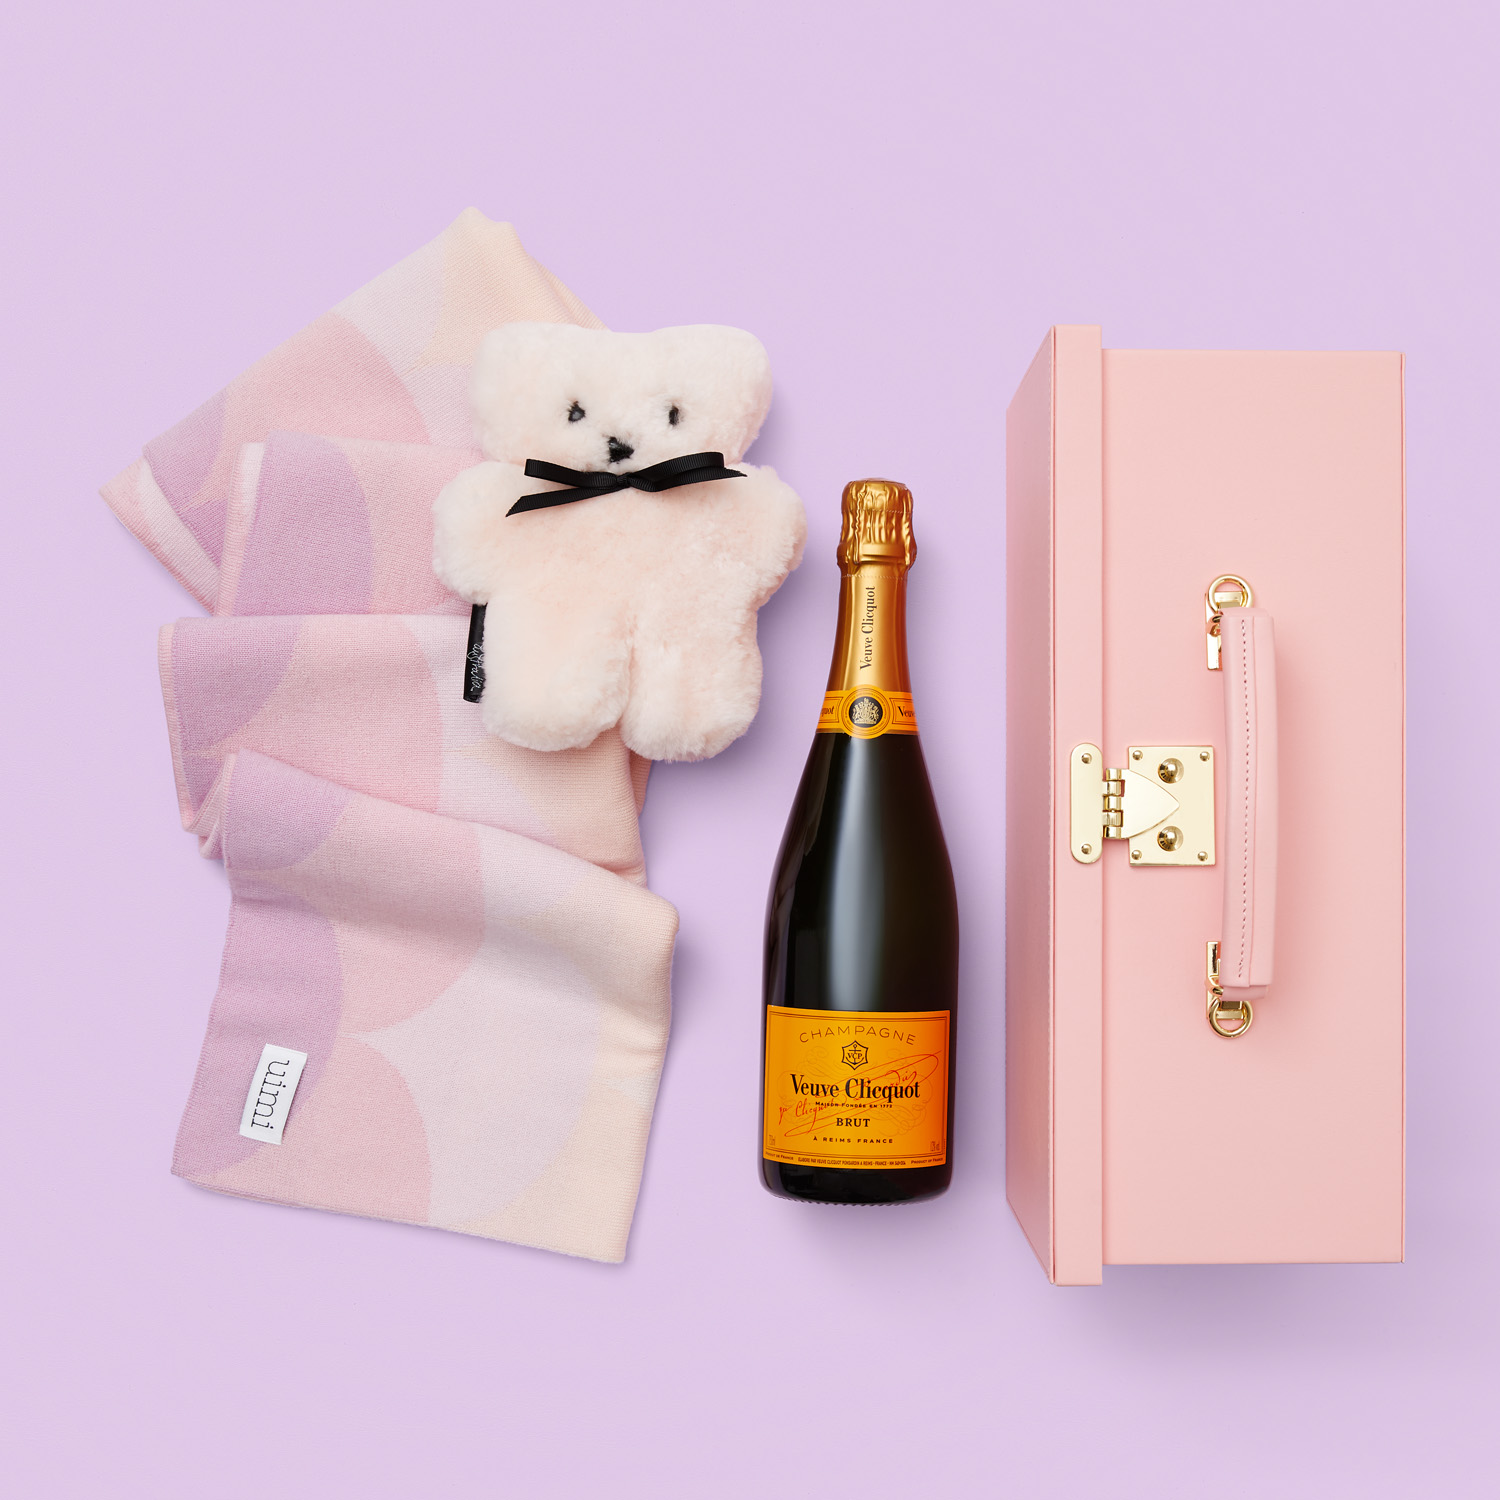 Baby girl gift with Veuve Clicquot french Champagne